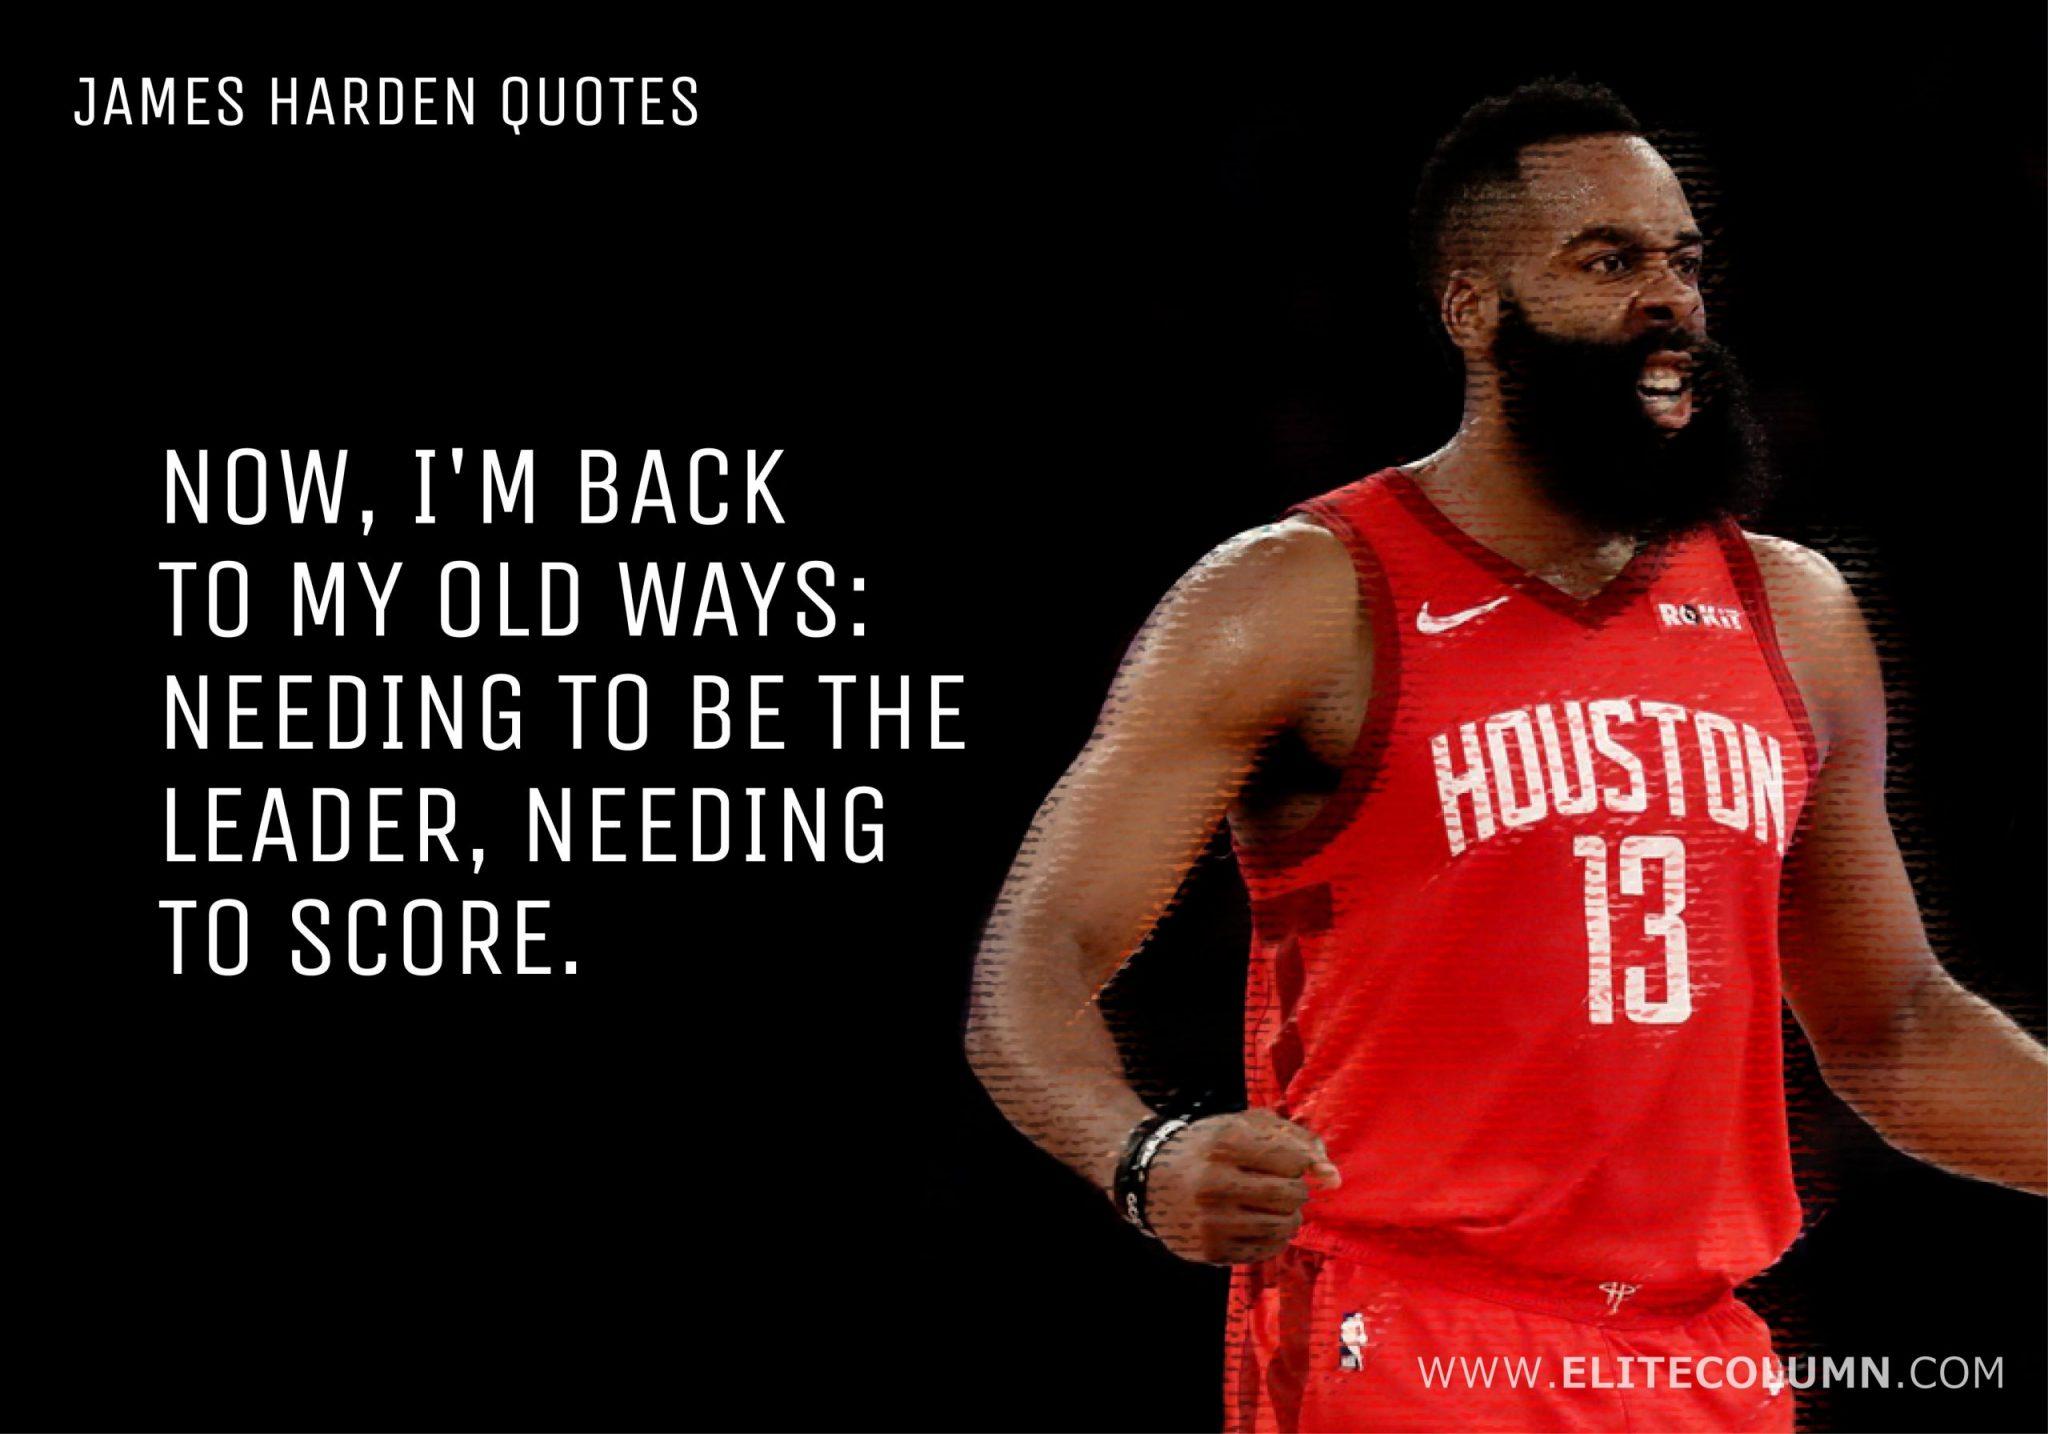 James Harden Quotes (10)